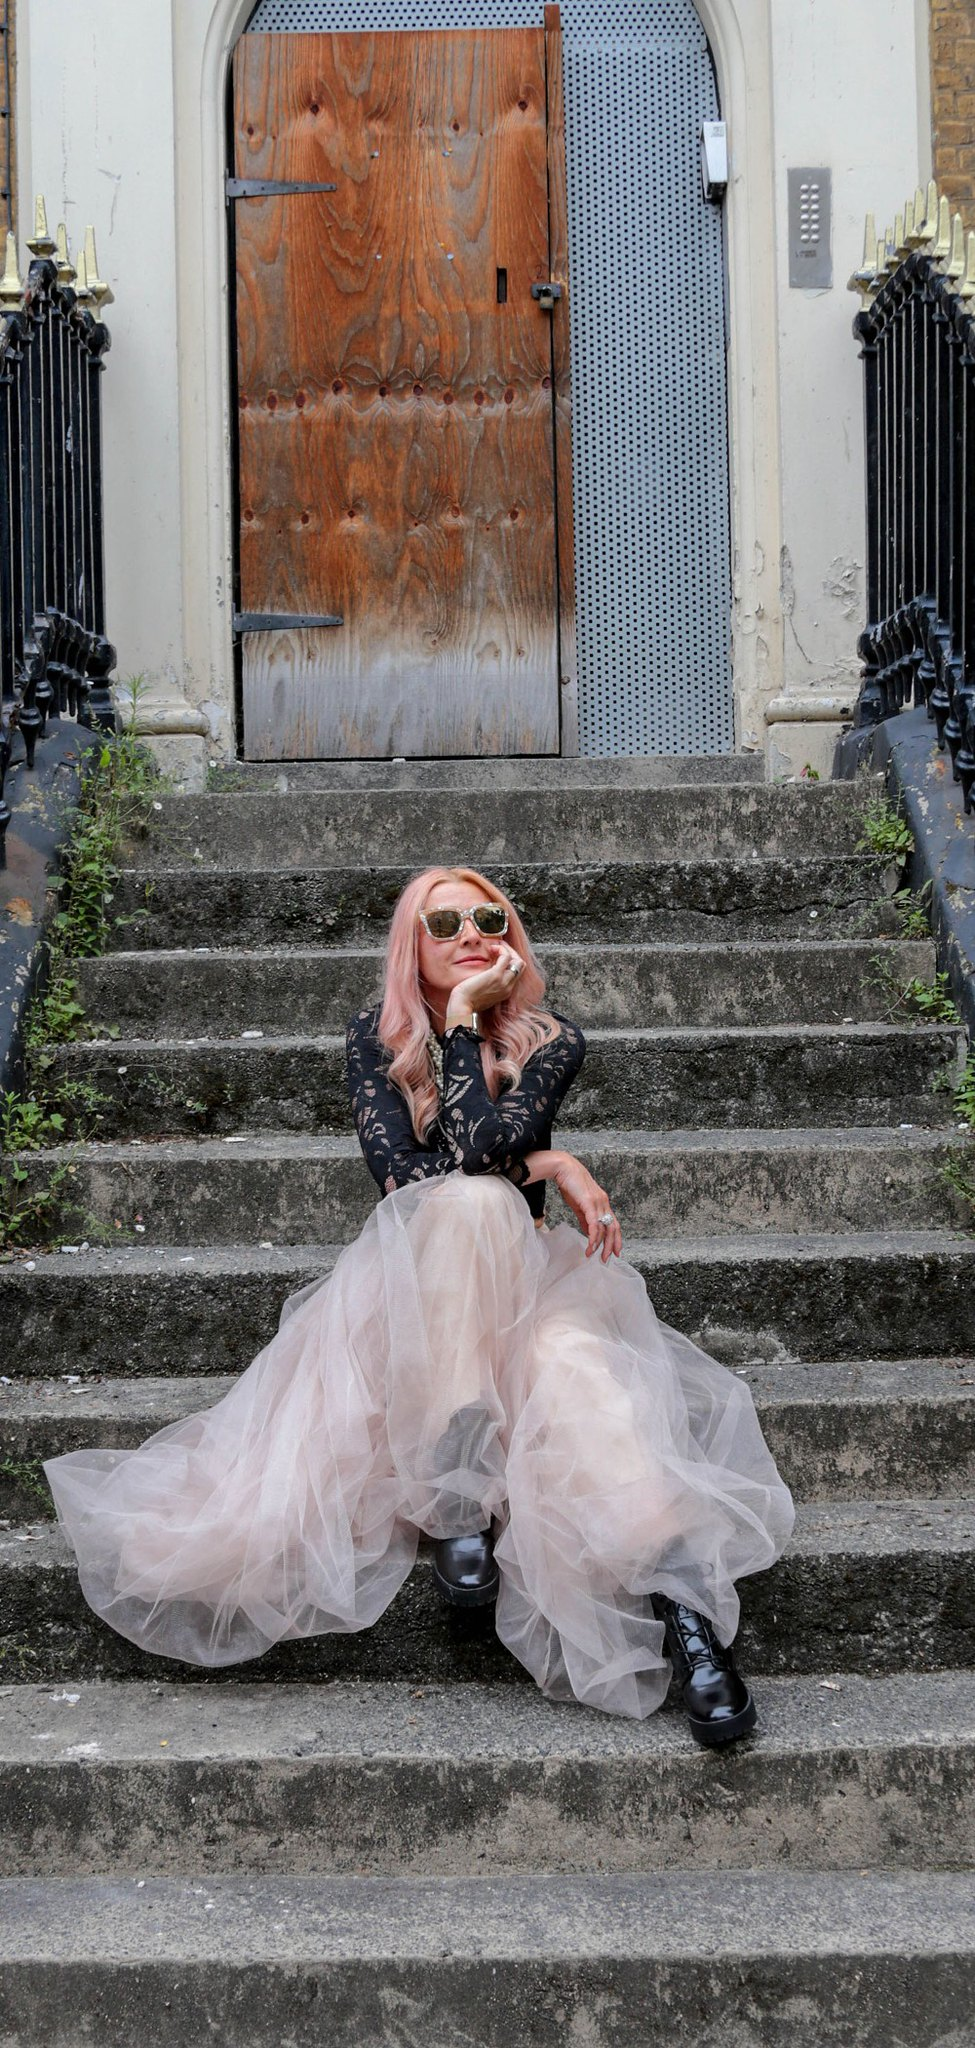 Catherine Summers AKA Not Dressed As Lamb   Wearing: cropped, long sleeve black lace top, pearl-effect square sunglasses, nude tulle maxi skirt, black lace-up boots   Sitting on the steps leading up to a boarded-up abandoned London town house